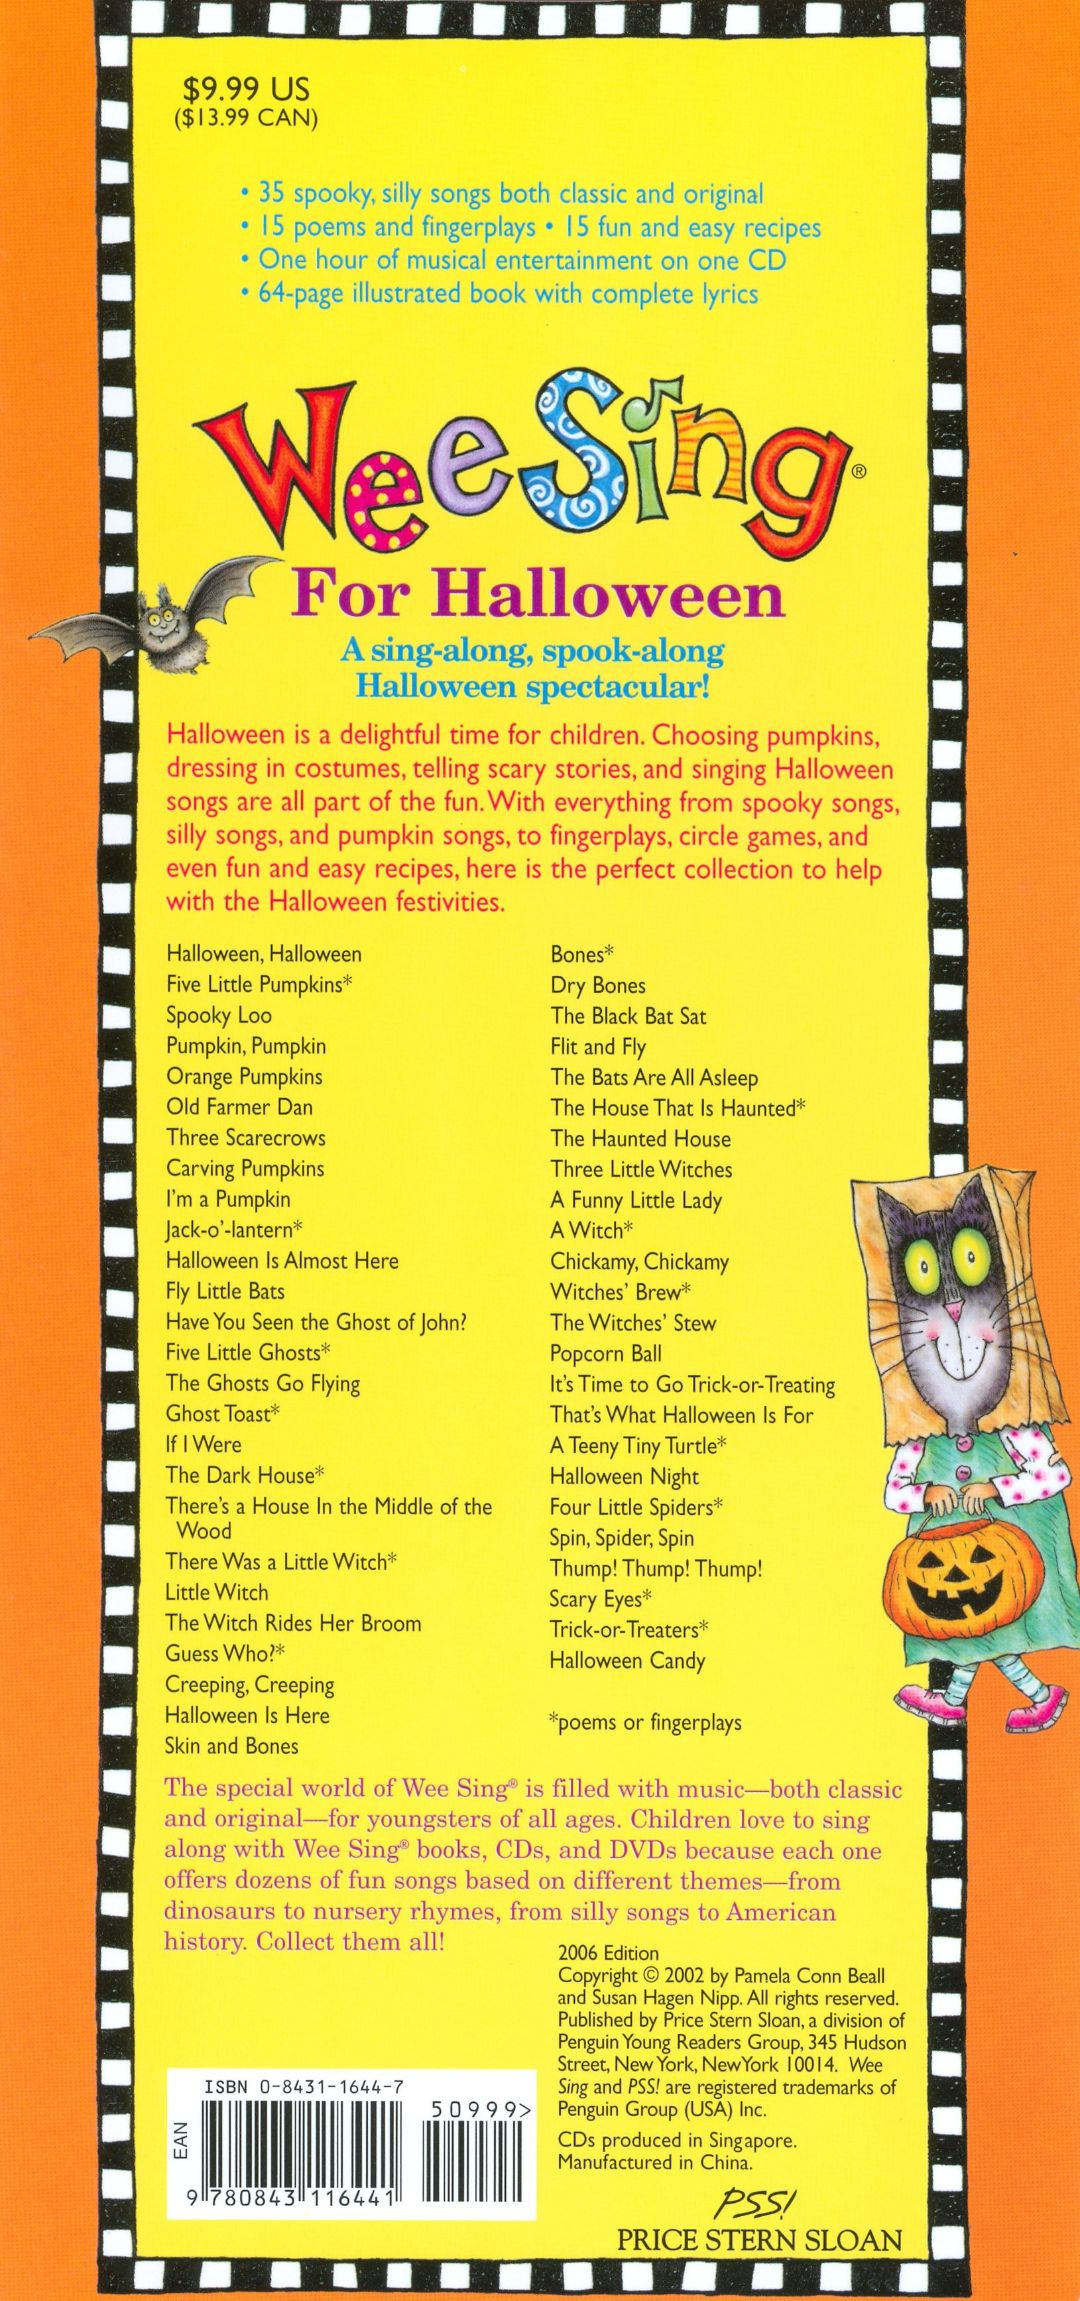 a scary halloween story scary stories for halloween telluride  wee sing for halloween pamela beall susan hagen nipp songs wee sing for halloween sfm a spooky scary halloween story